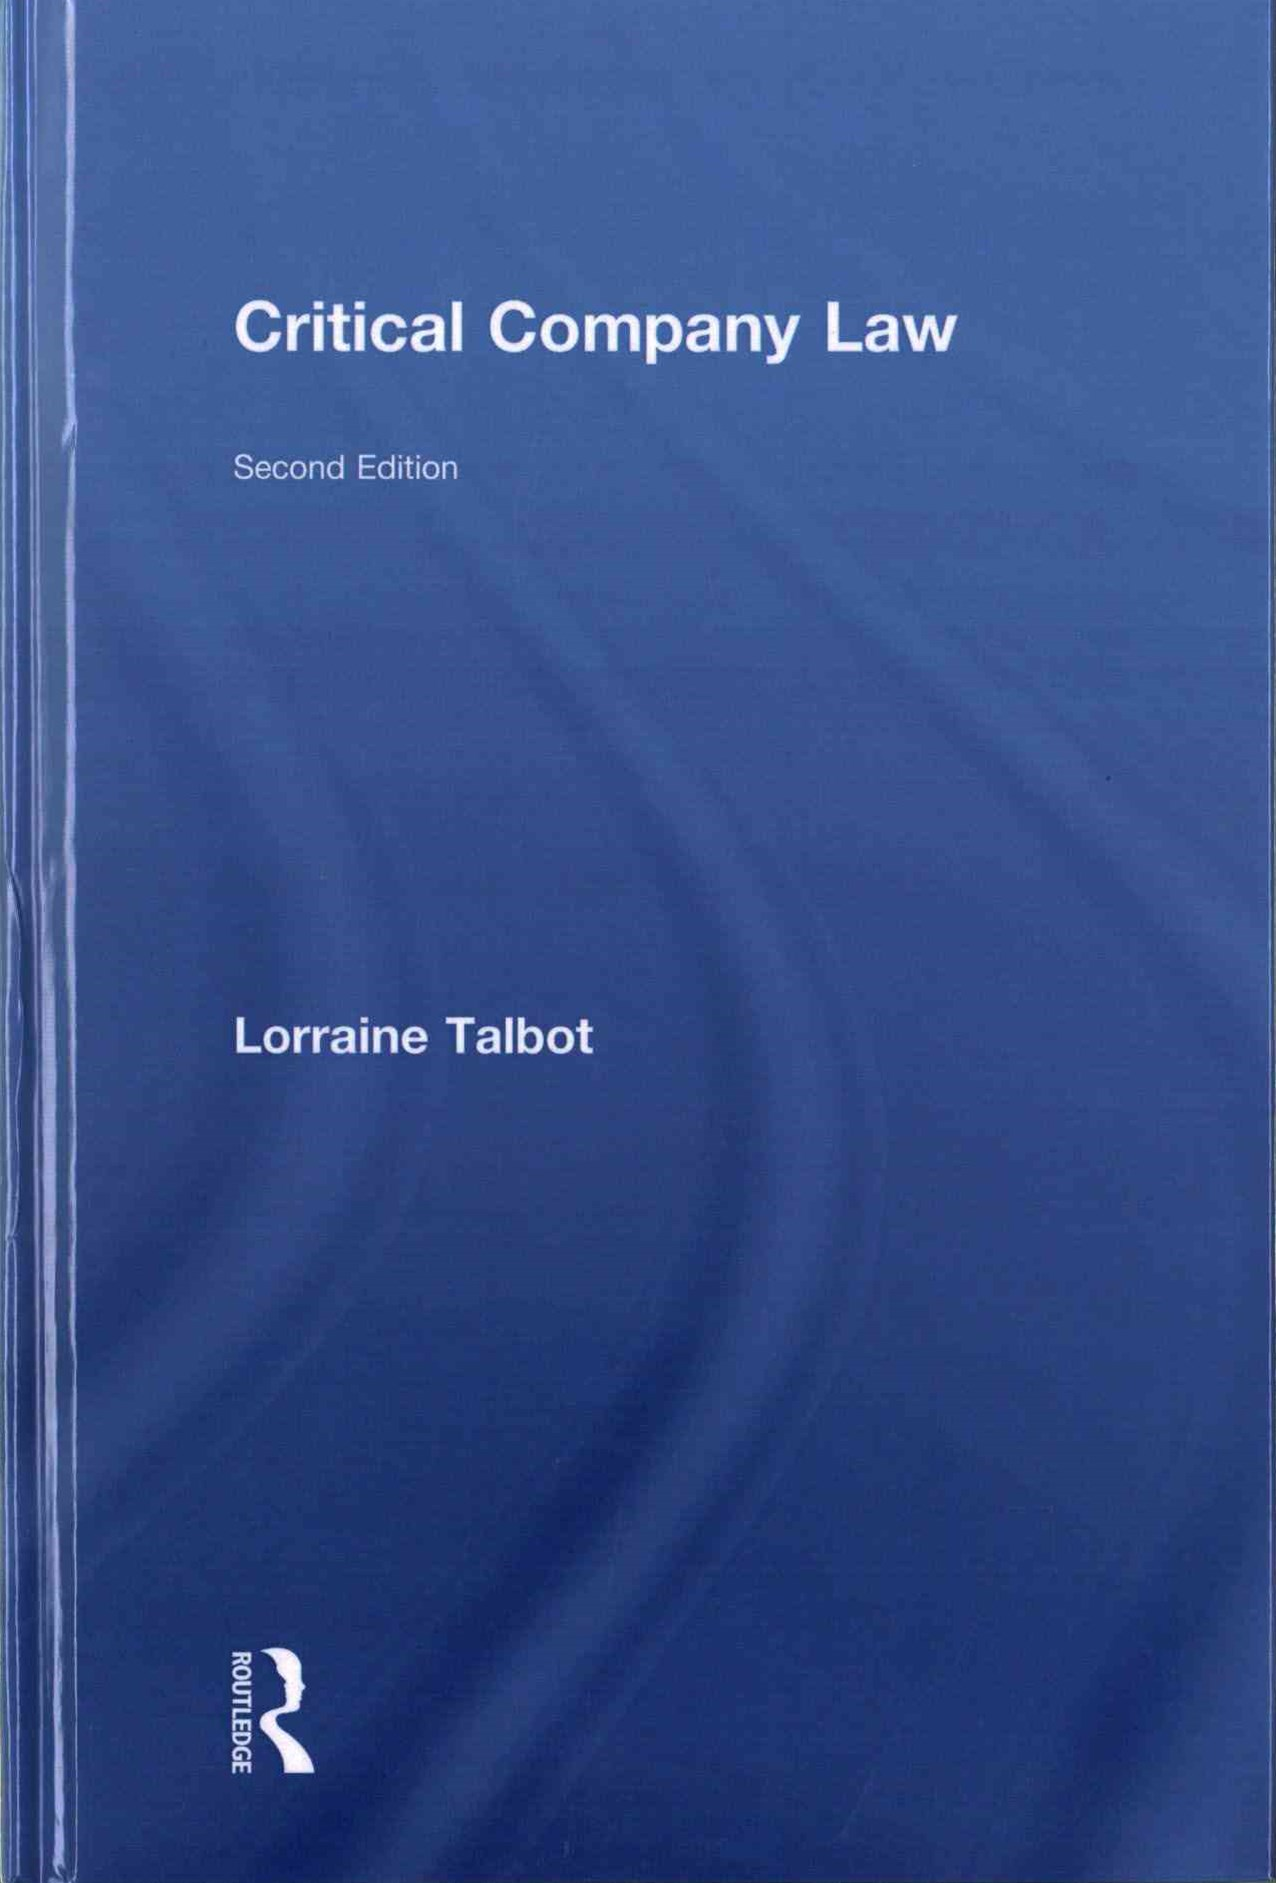 Critical Company Law